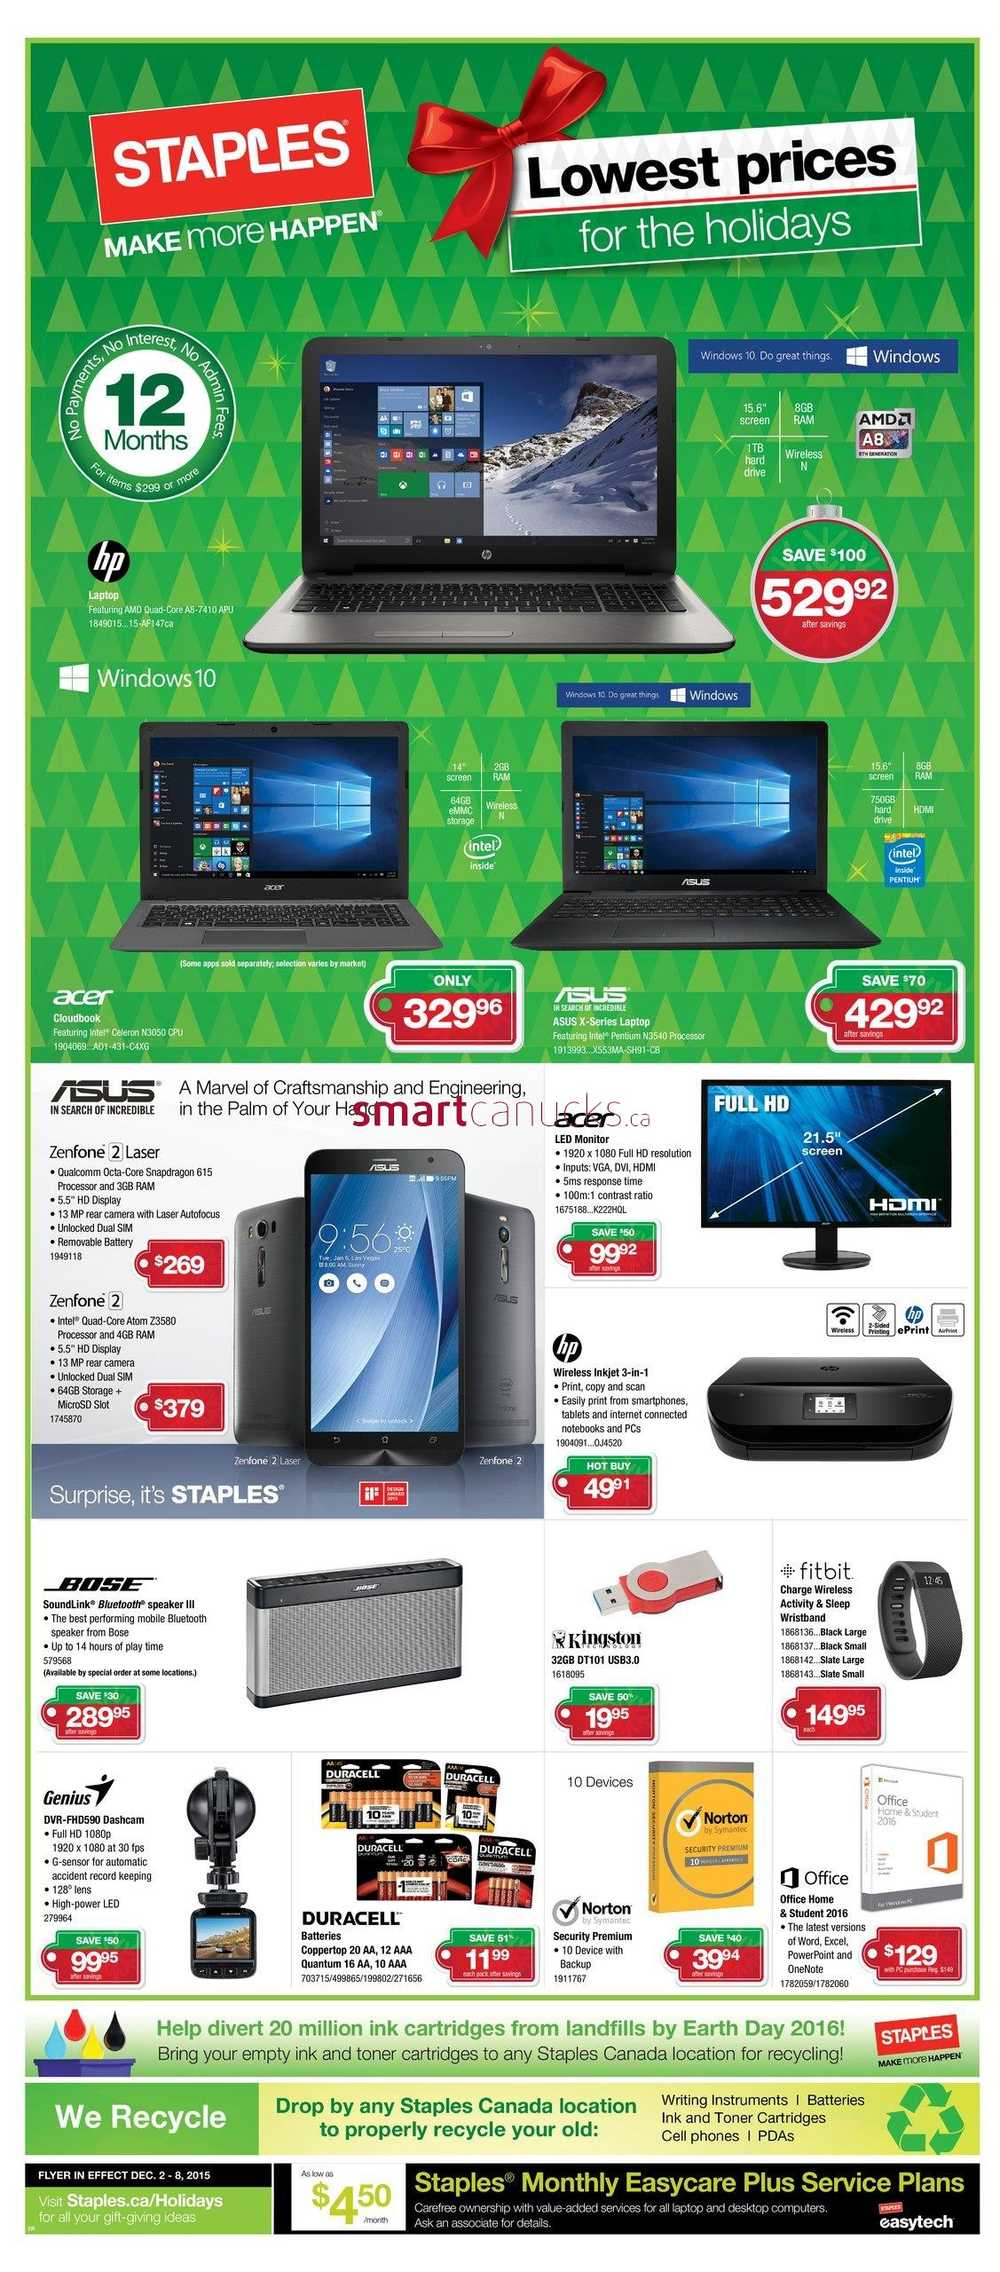 View the Staples Flyer Prices, valid December 5 – December 11, Save with this week Staples Sales and weekly flyer deals & promotions. The company is one of the best-regarded retailers of printers, computers, electronics, office furniture and office supplies.